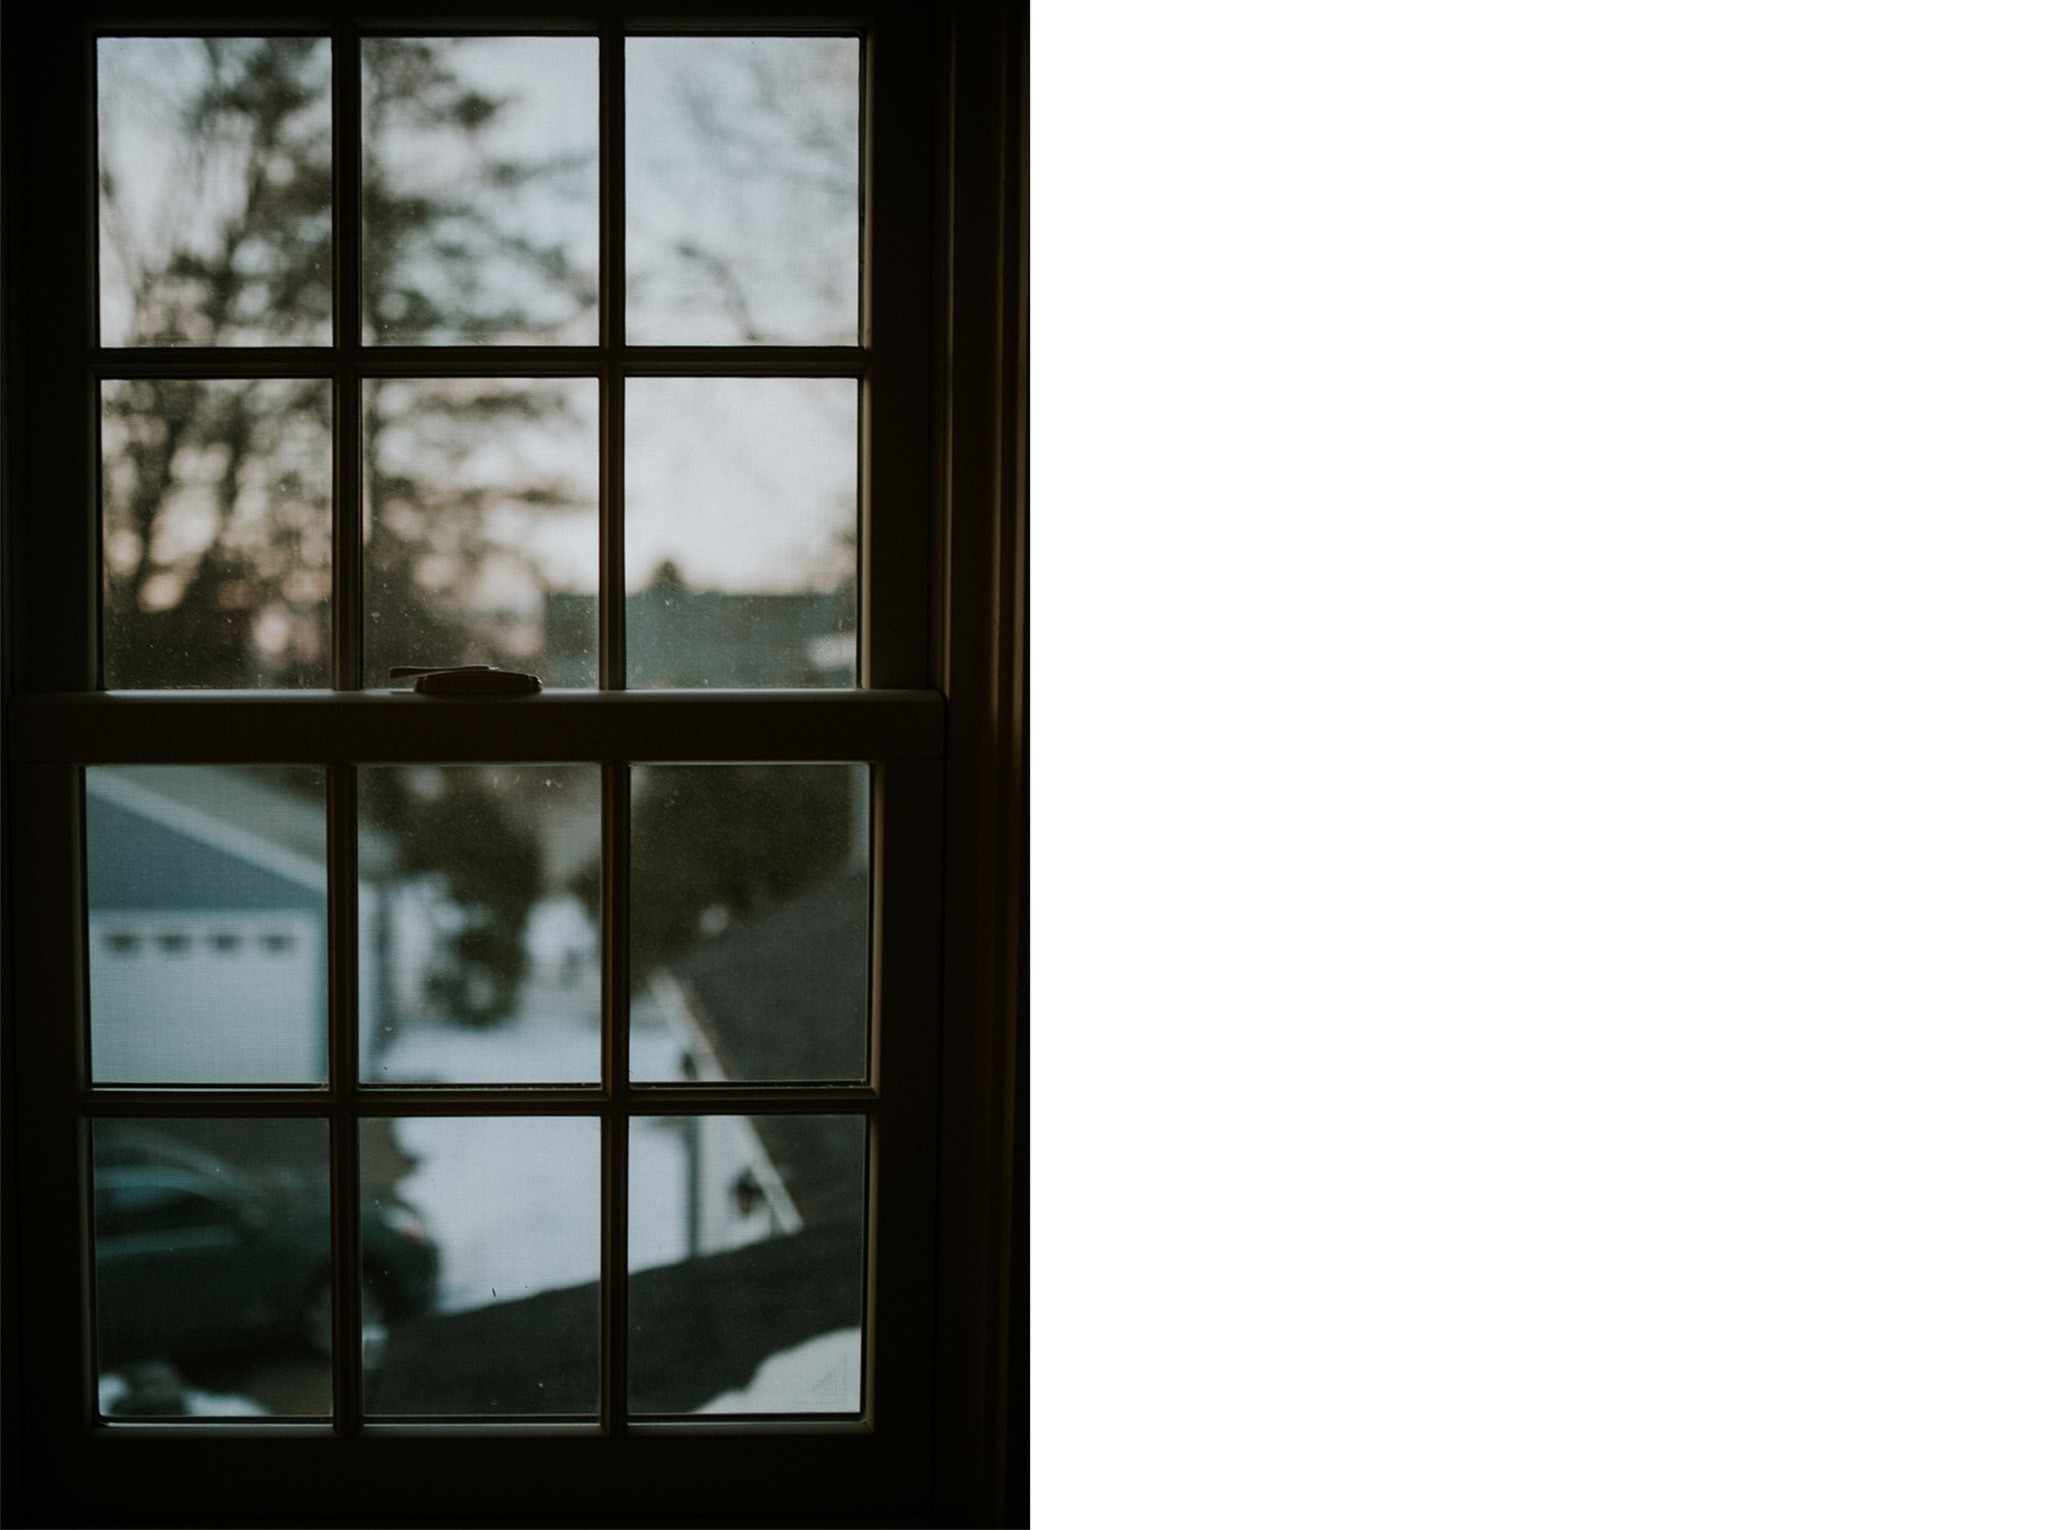 March 21: I couldn't believe there was snow on the ground when I looked out the window, that my car was parked in a Connecticut drive, that our life had taken this unexpected turn. I was a mixed bag of nerves and excitement.